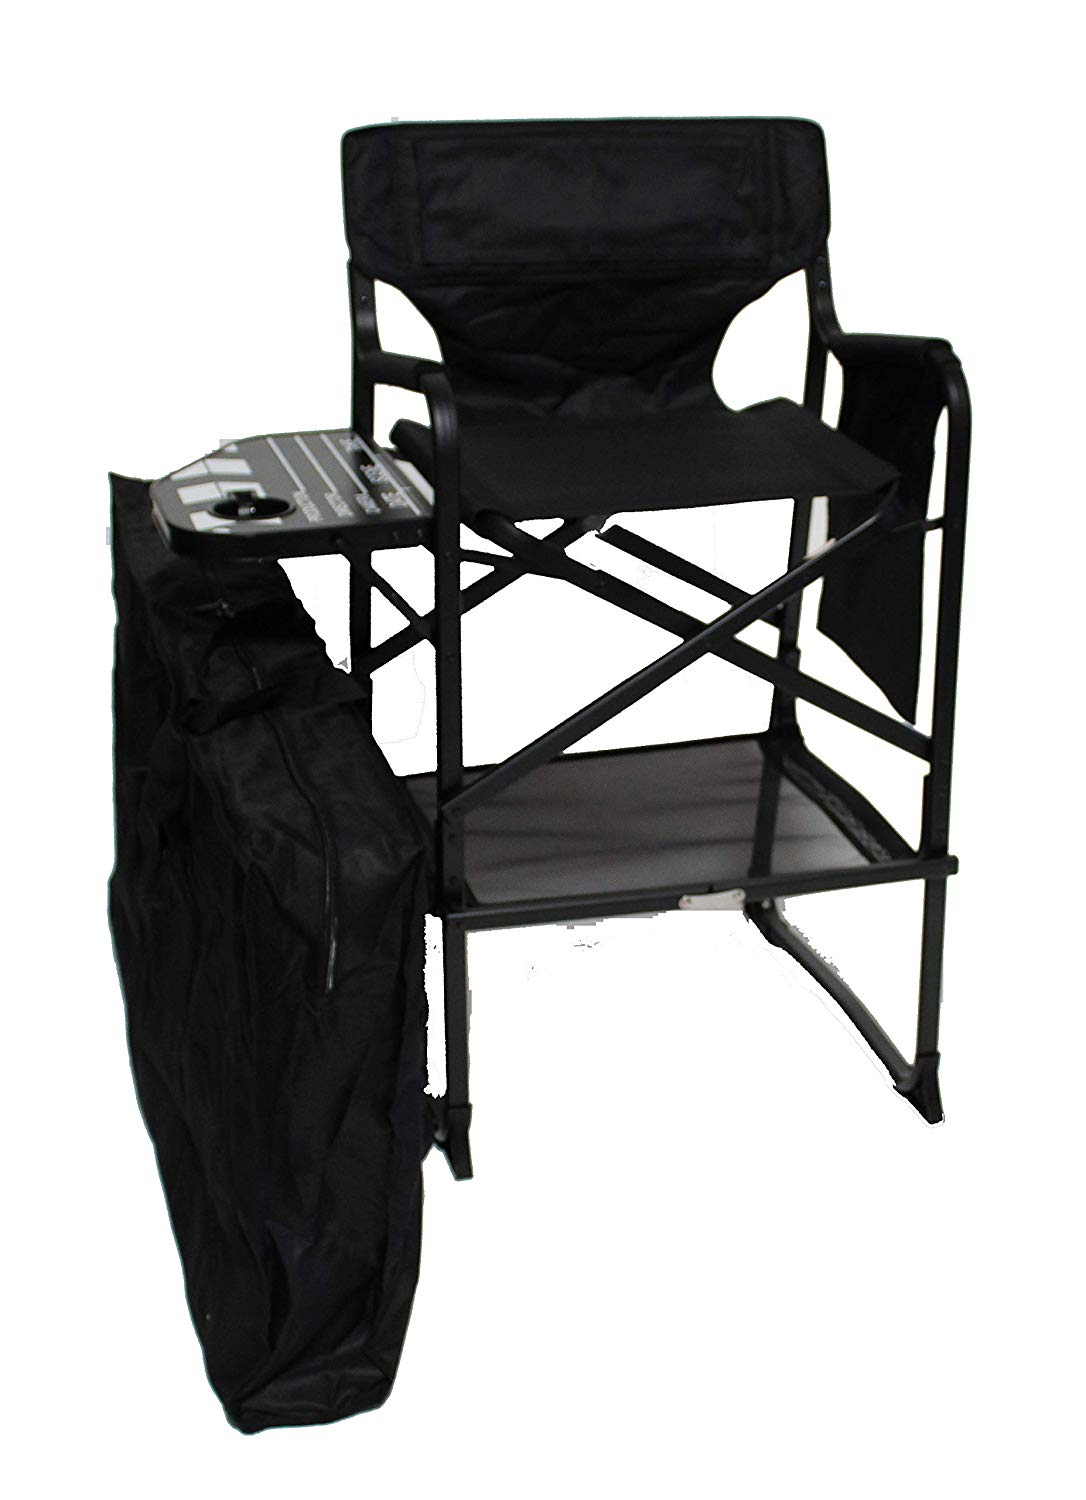 World Outdoor Products Hollywood Professional Lightweight Tall Directors Chair Includes a Limited Edition Clapper Board Side Table, Cup Holder, Side Bag, Automatic Footrest and Carry/Storage Bag.